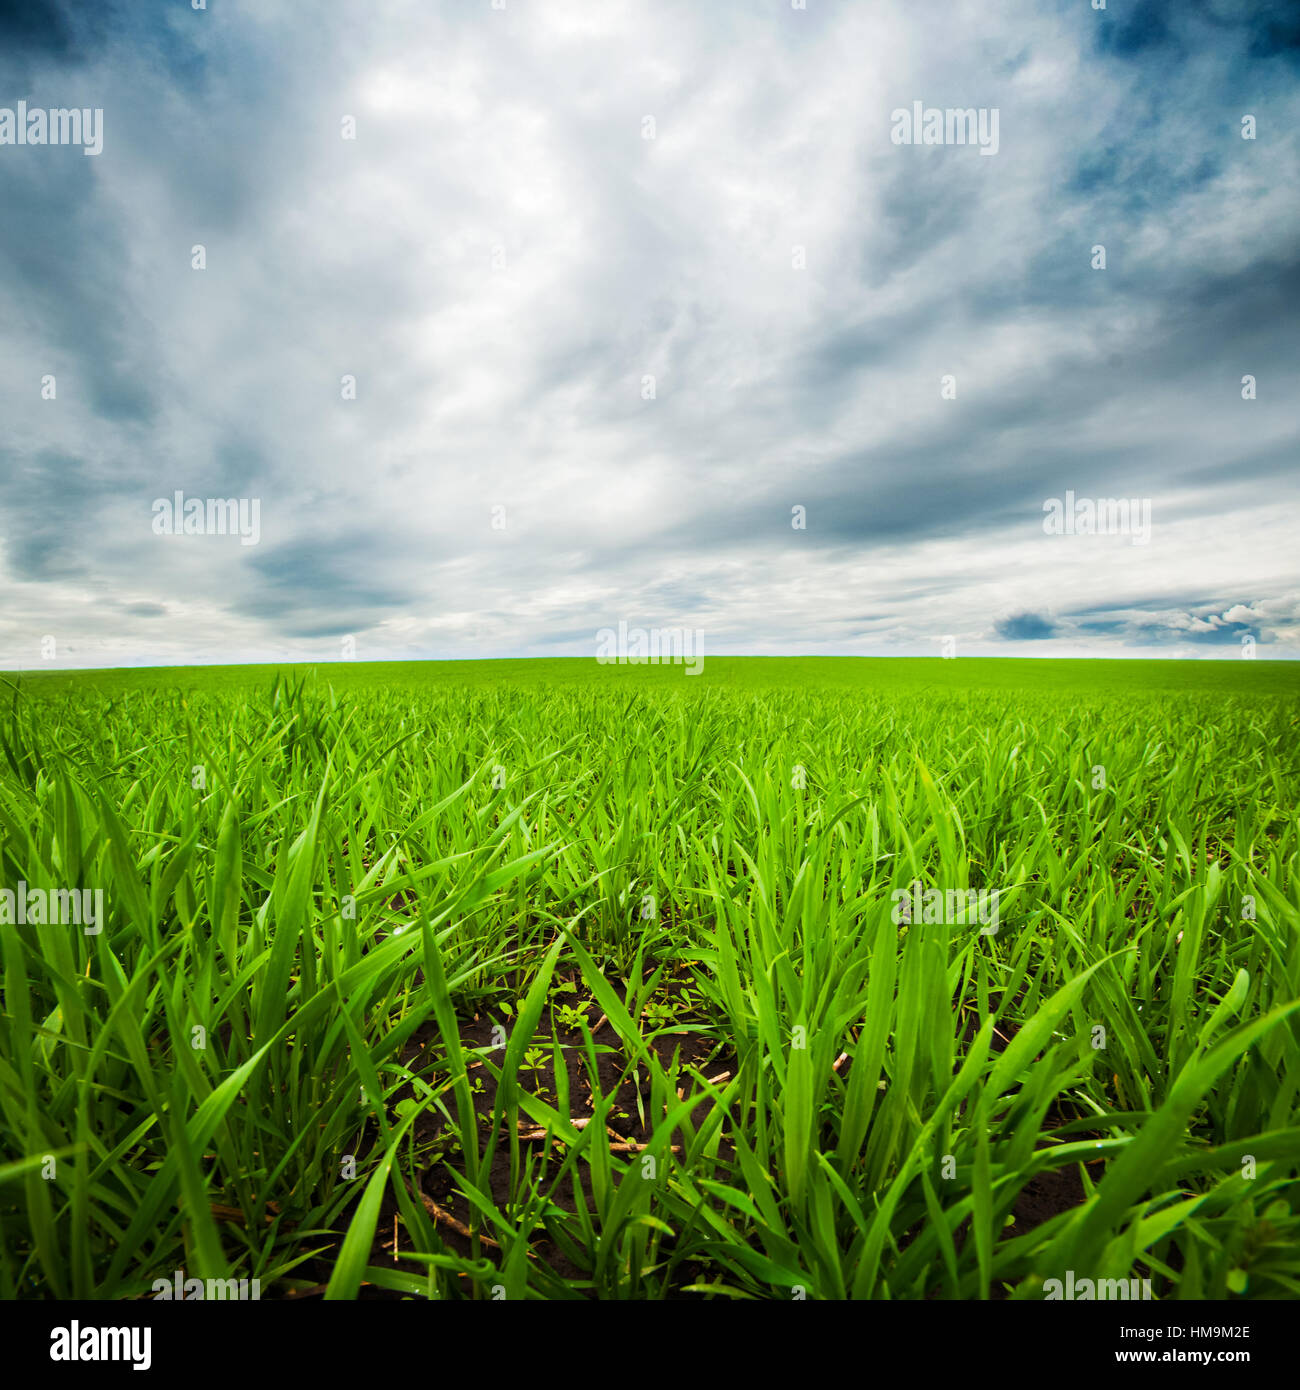 dramatic sky over green field - Stock Image